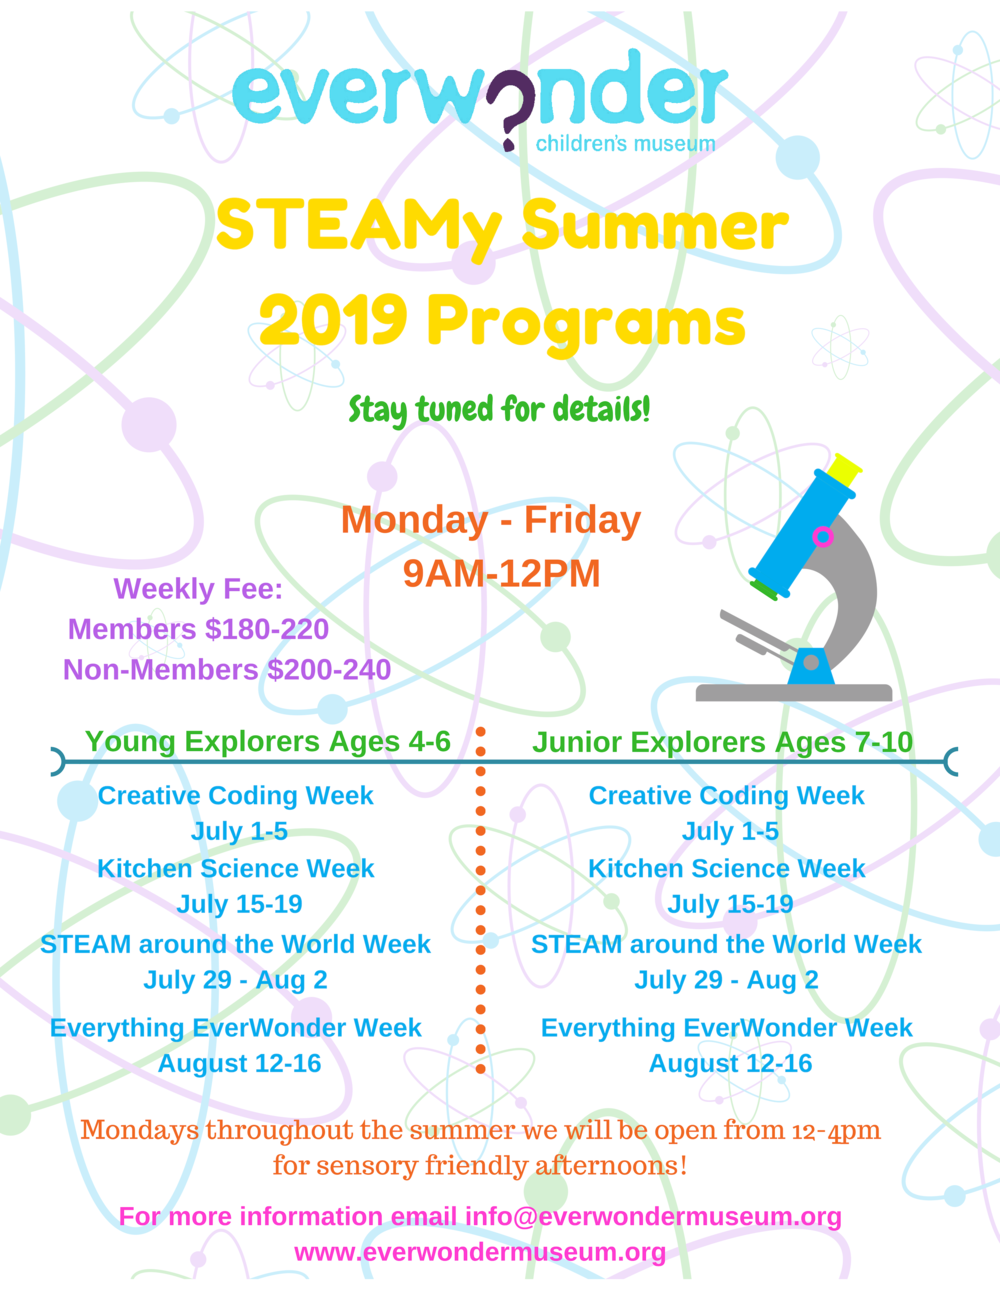 STEAMy Summer Programs are here! - Whether it's coding robots, creating edible science, learning about science around the world, or discovering new things at our museum, you're child will be sure to have a blast at one of our themed weeks of fun!